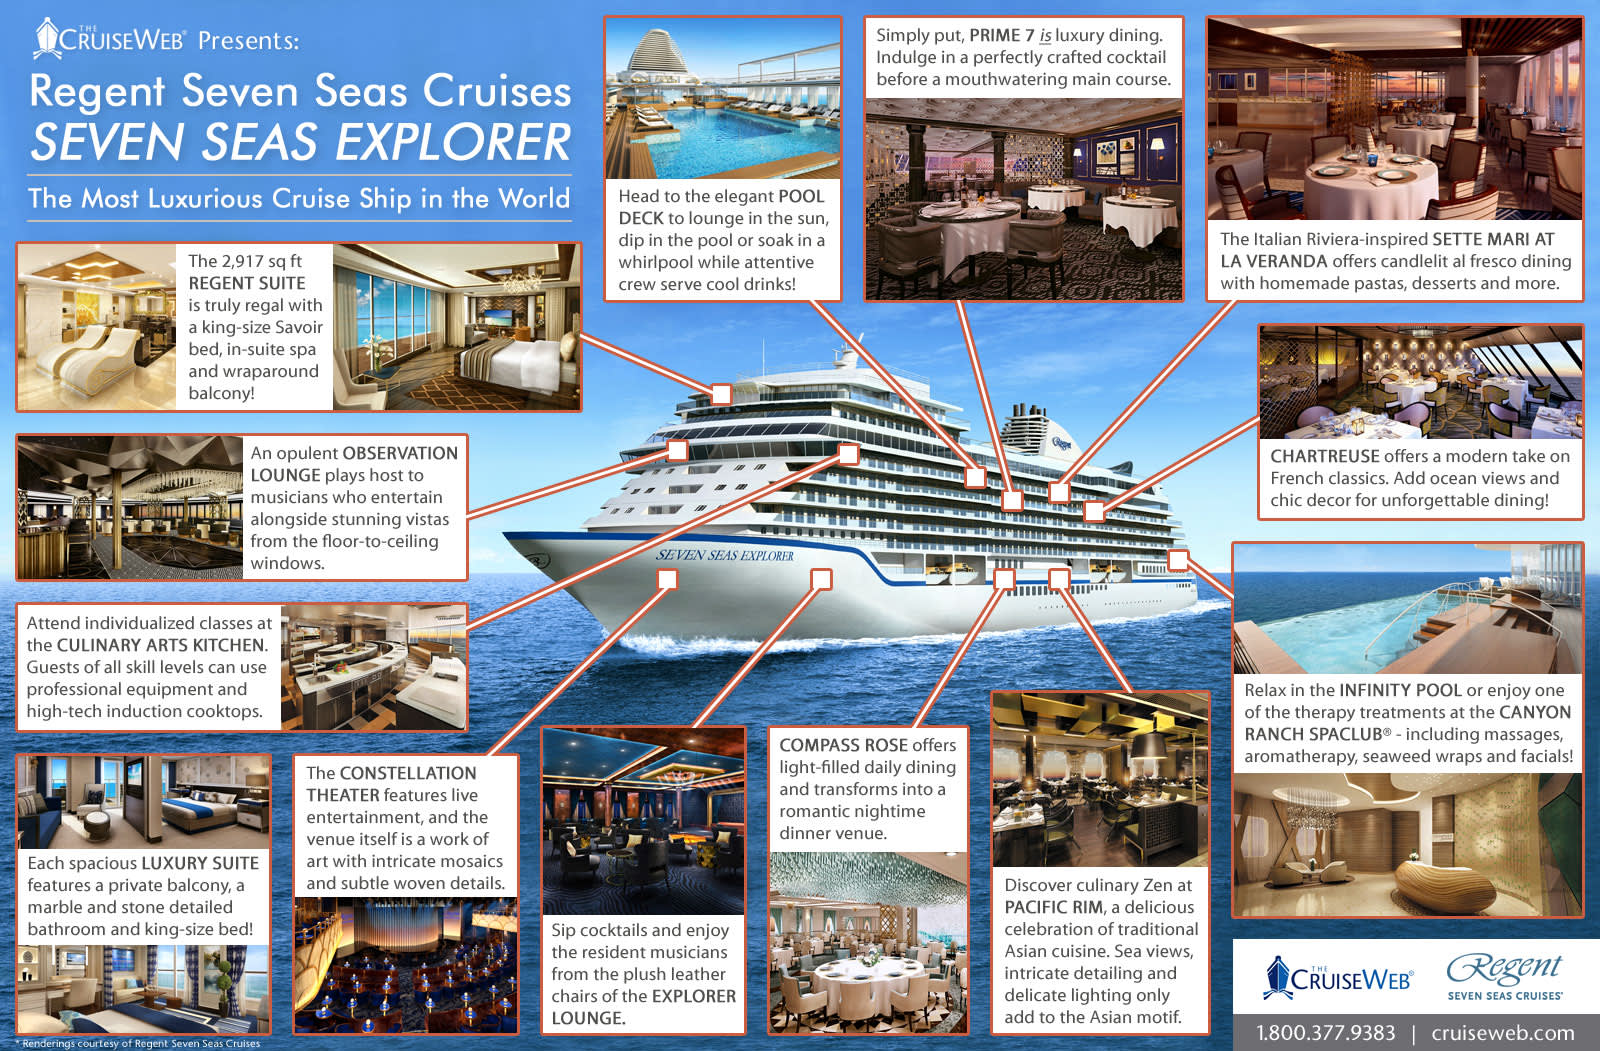 Inside Regent Seven Seas Explorer: An Infographic